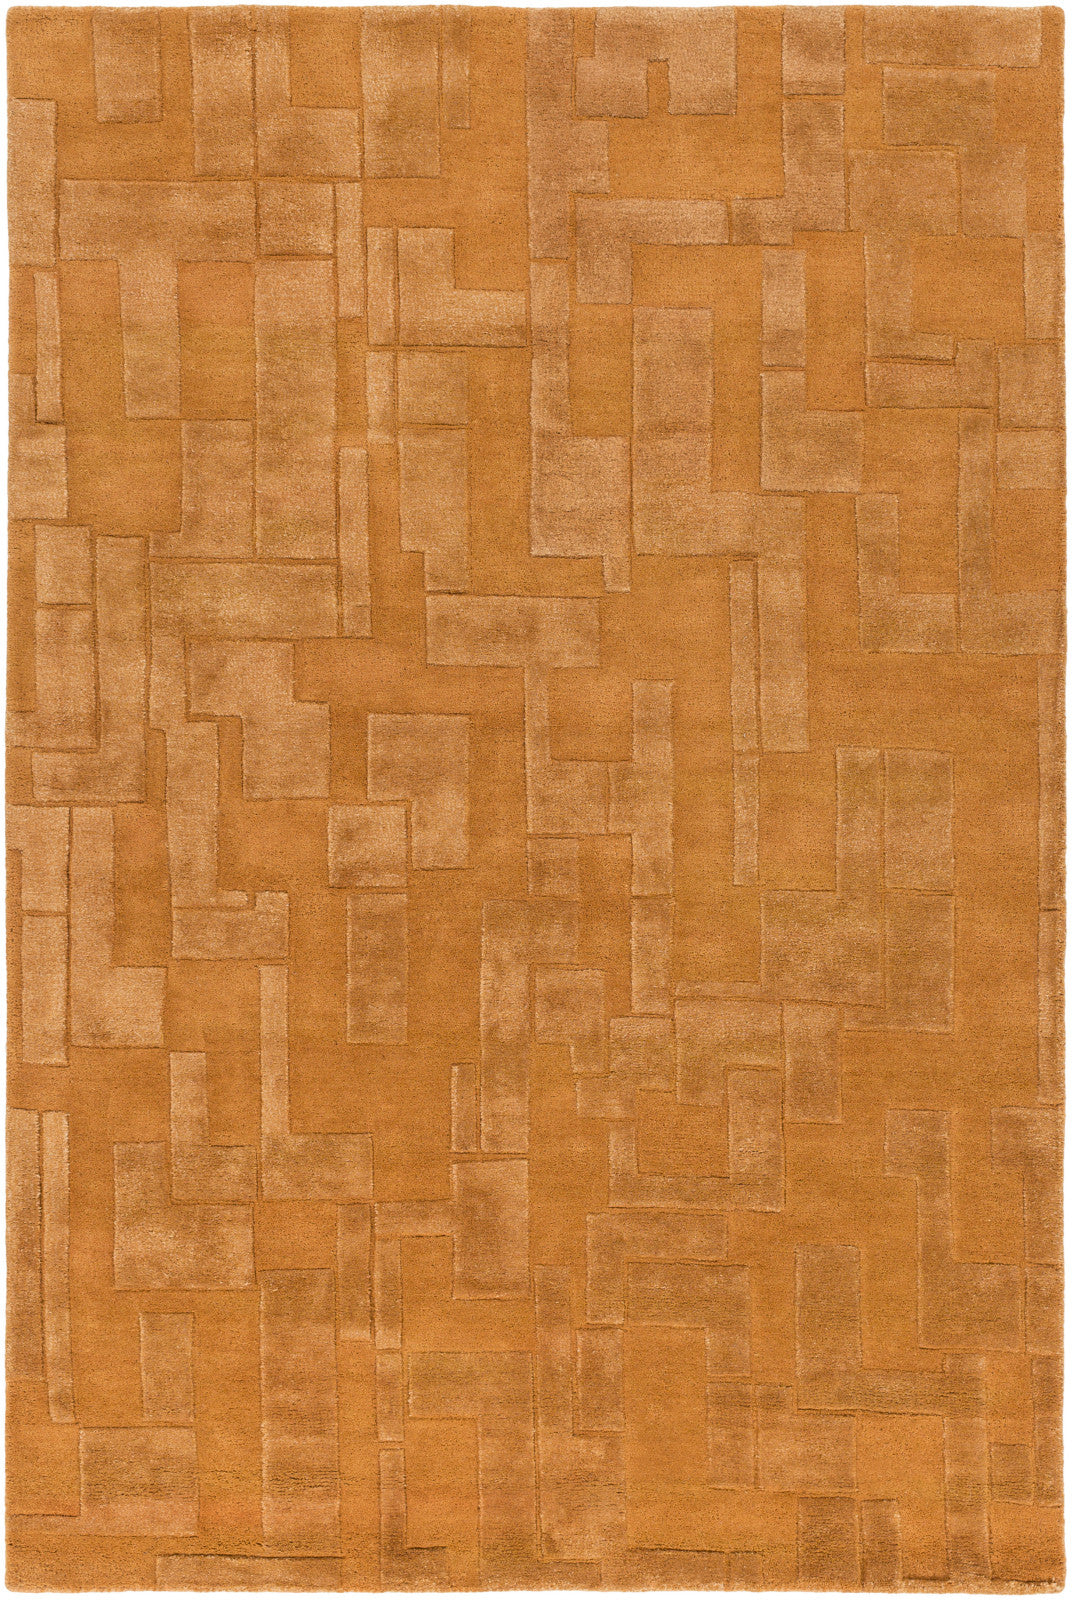 Surya Antoinette ATT-2013 Orange Area Rug main image